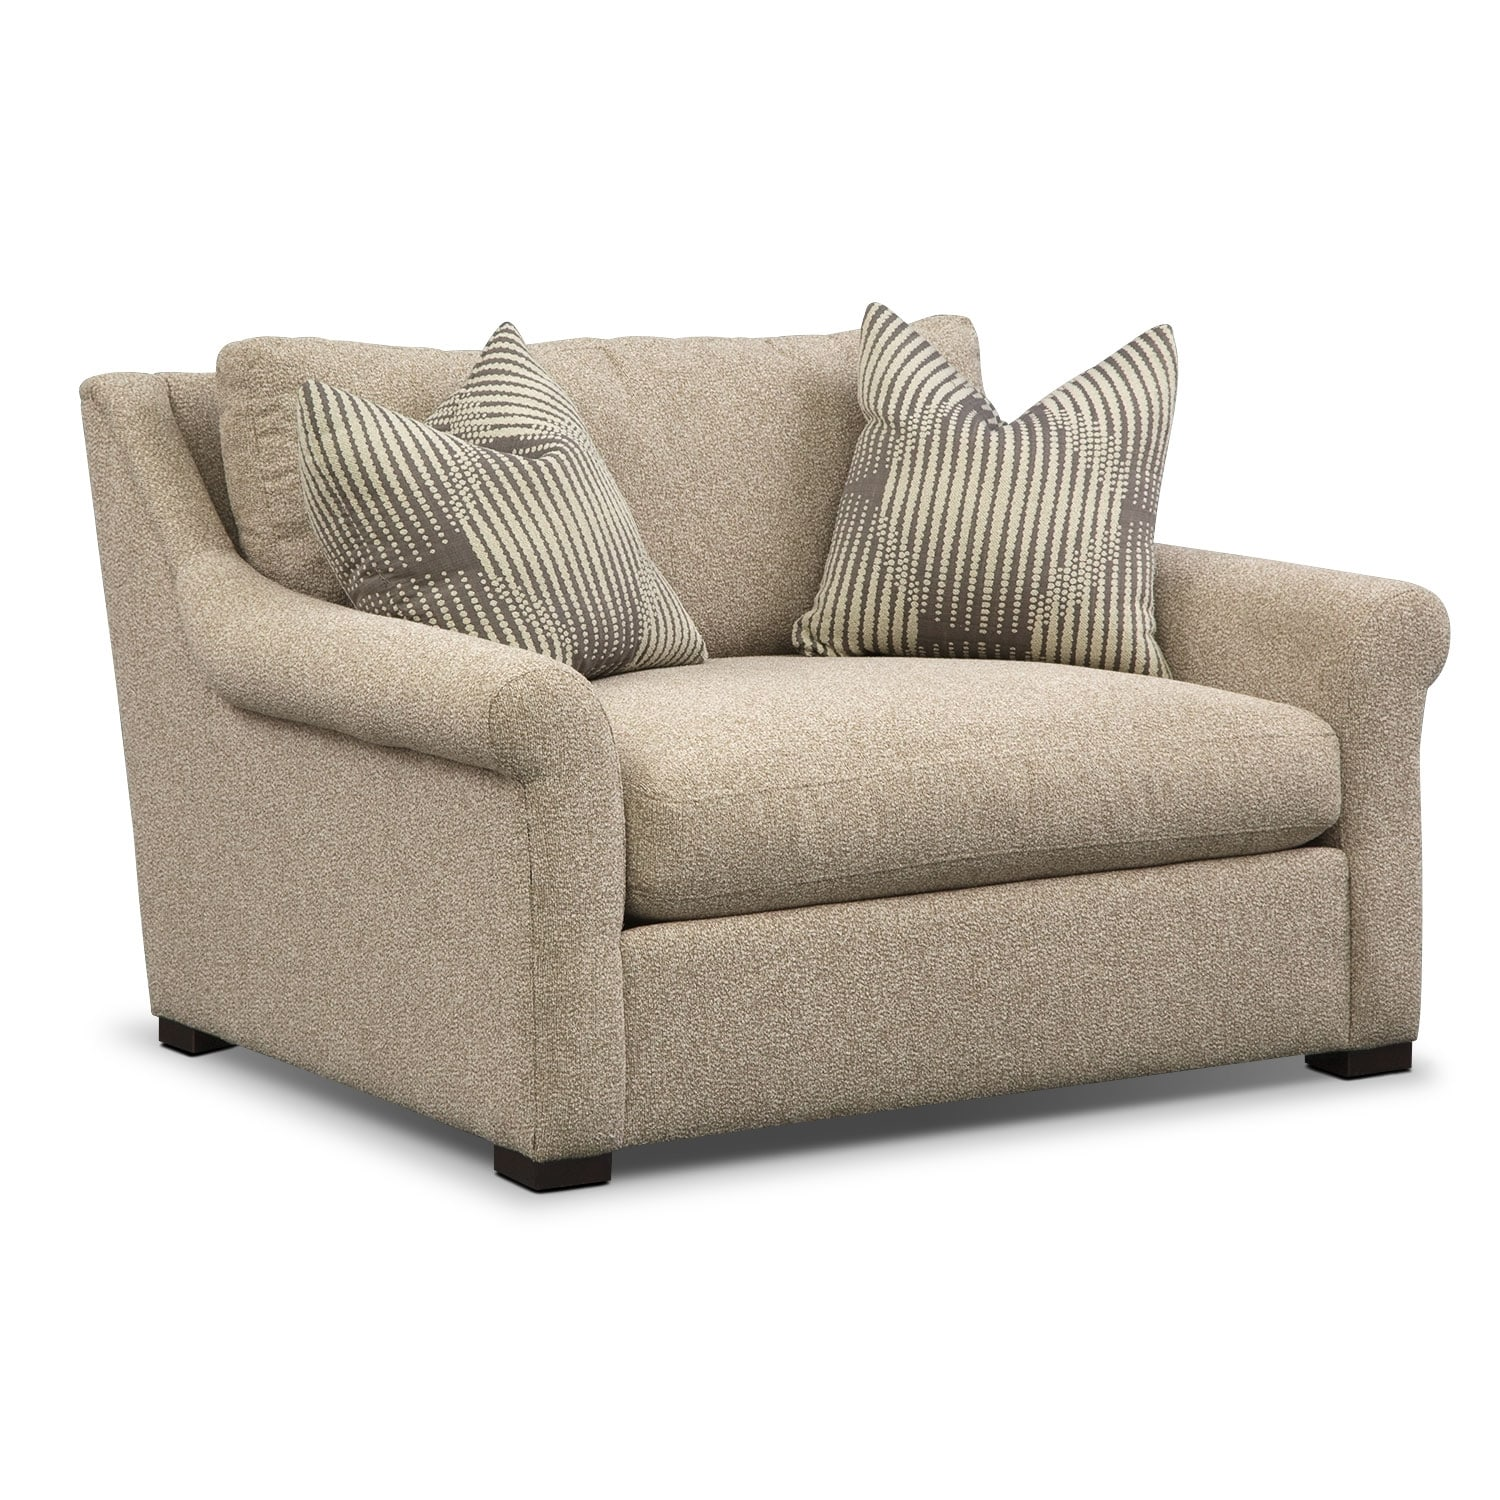 Robertson comfort 2 pc living room package w chair for Comfort living furniture